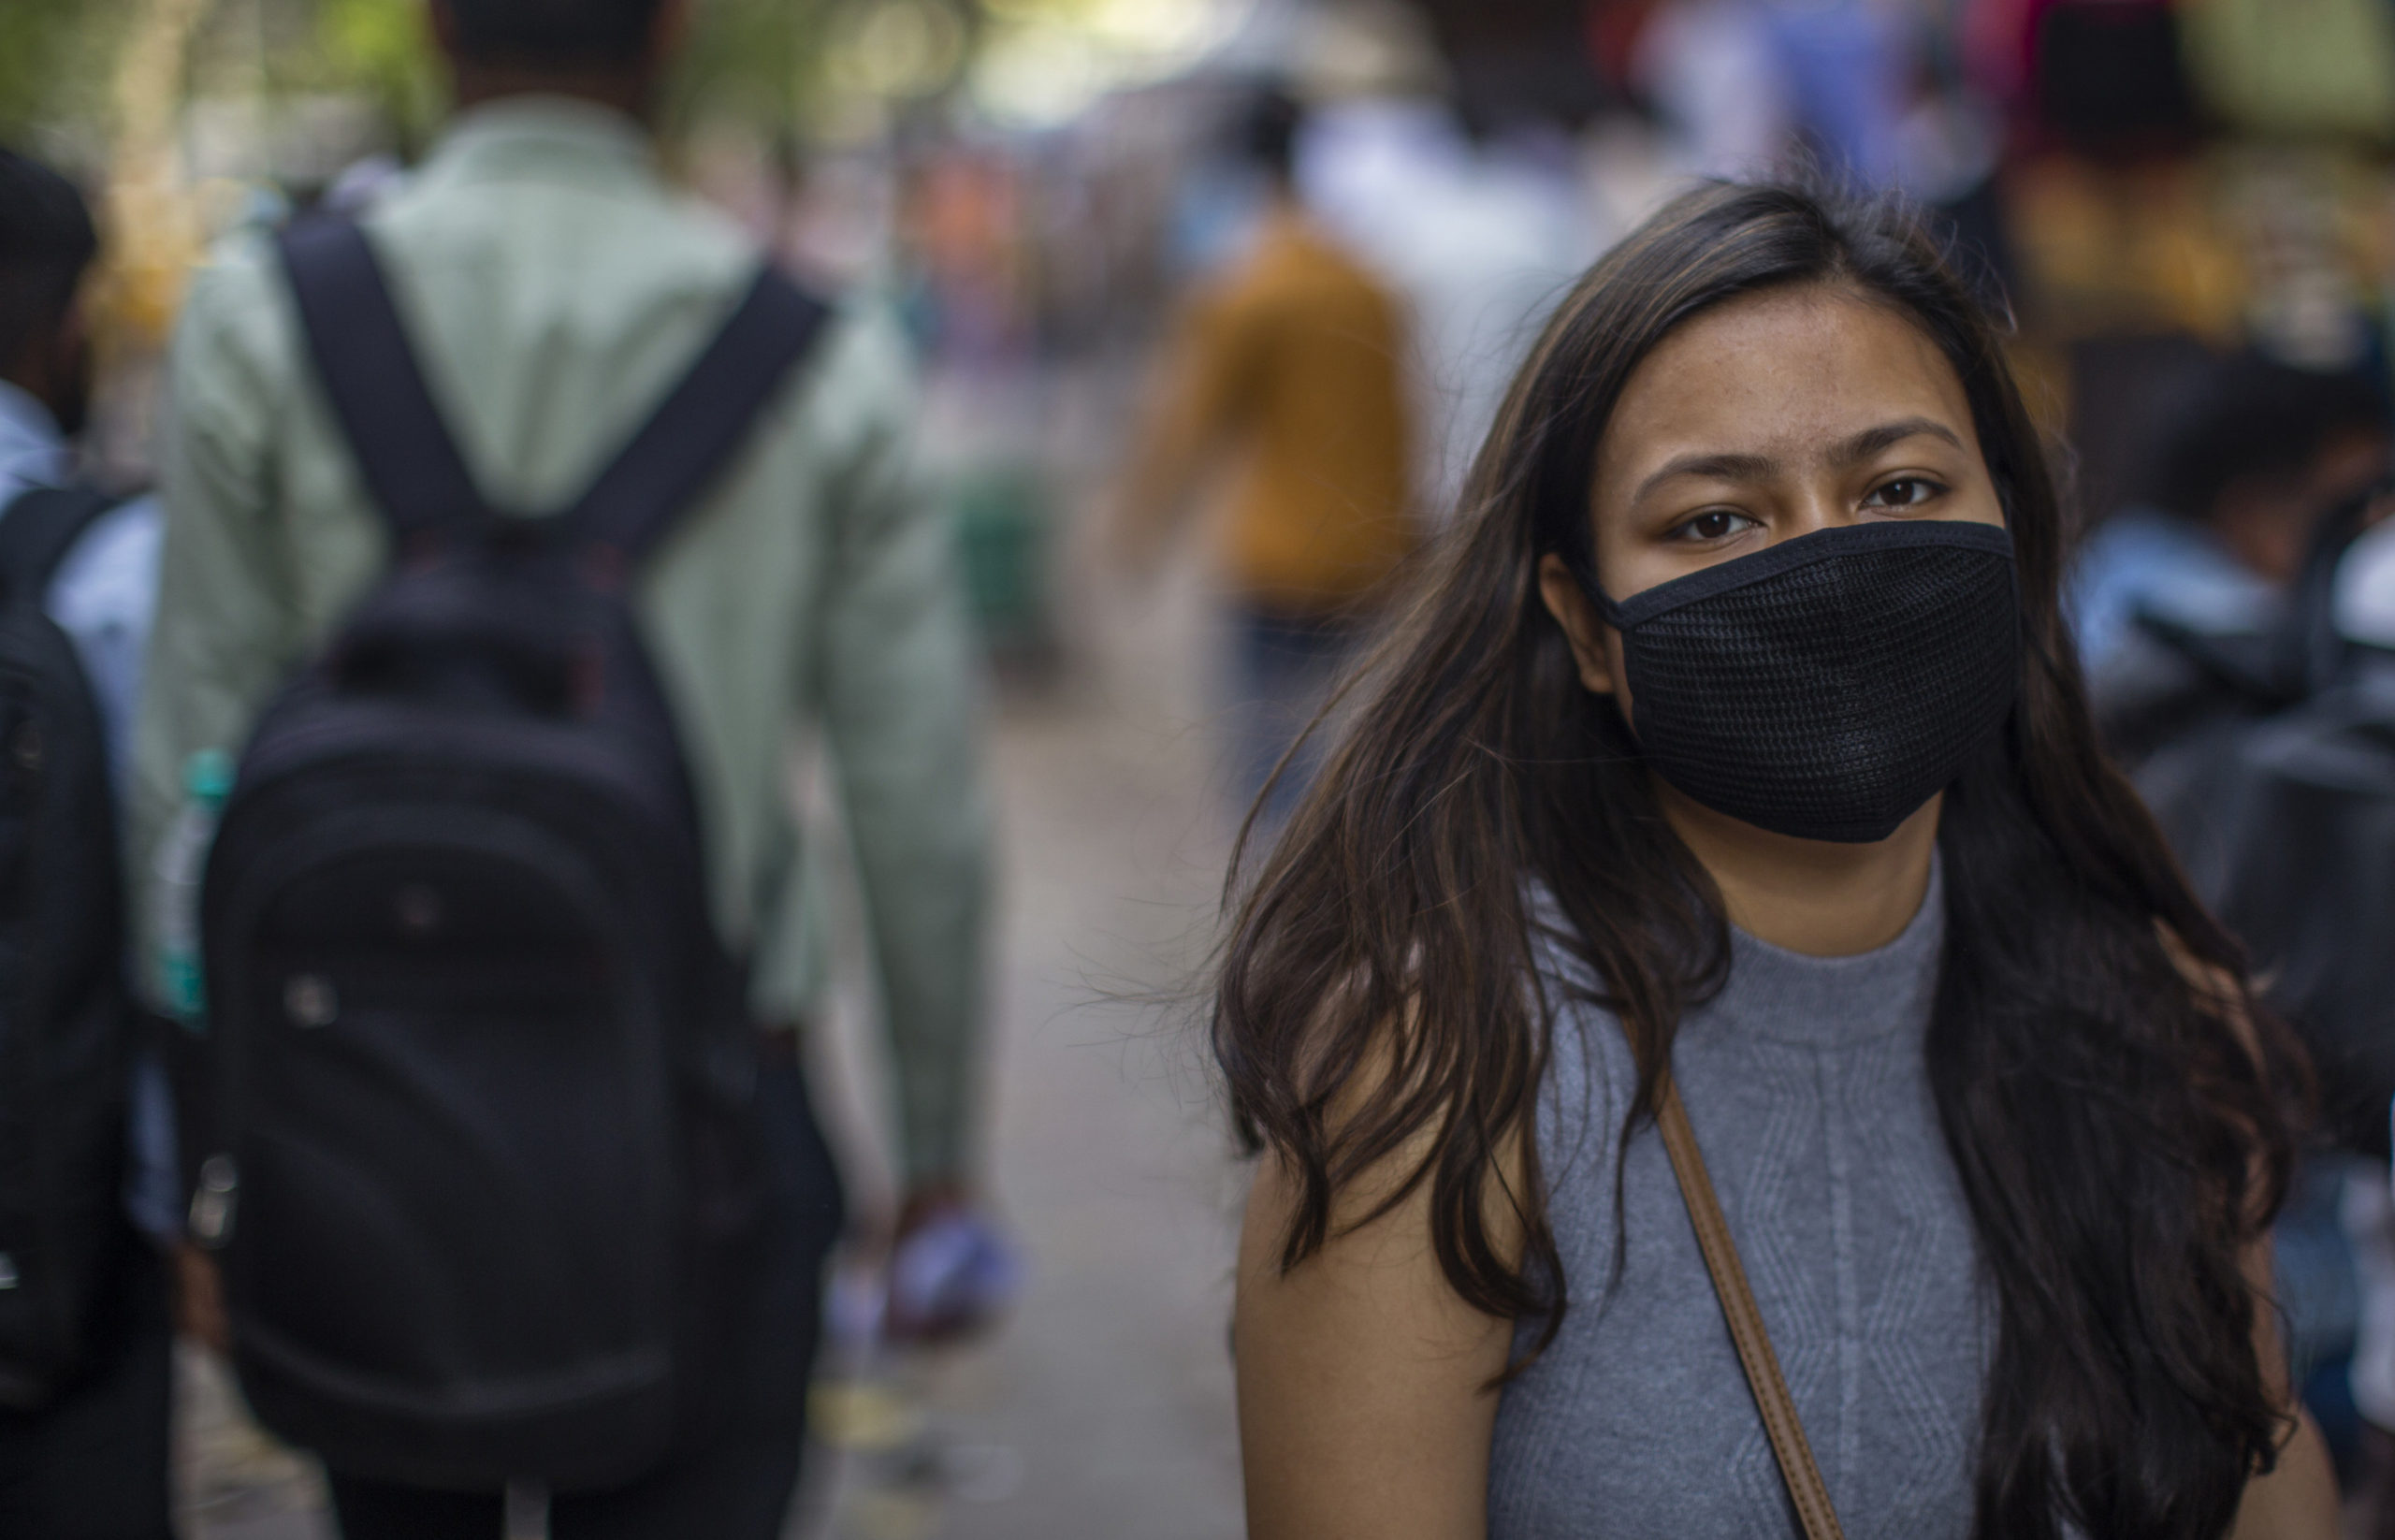 India's First Line Of Defense Against The Coronavirus Is An Army Of 900,000 Women Without Masks Or Hand Sanitizer